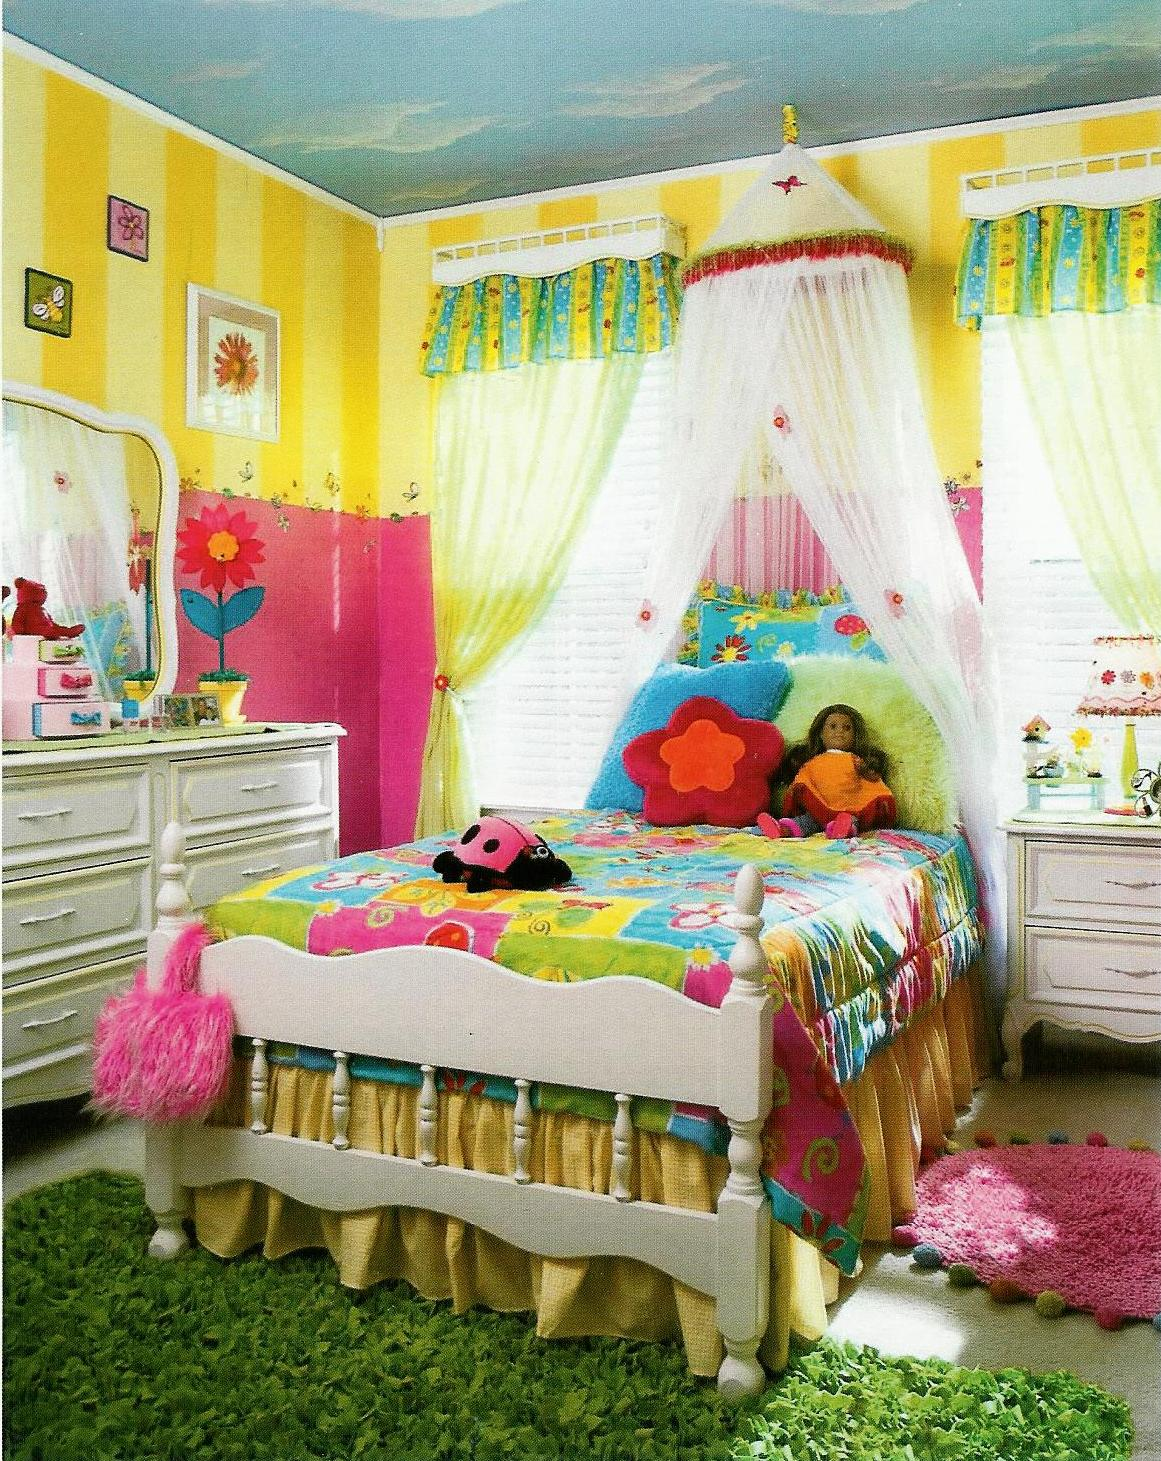 Tips for decorating kid s rooms devine decorating results for your interior - Kids room image ...